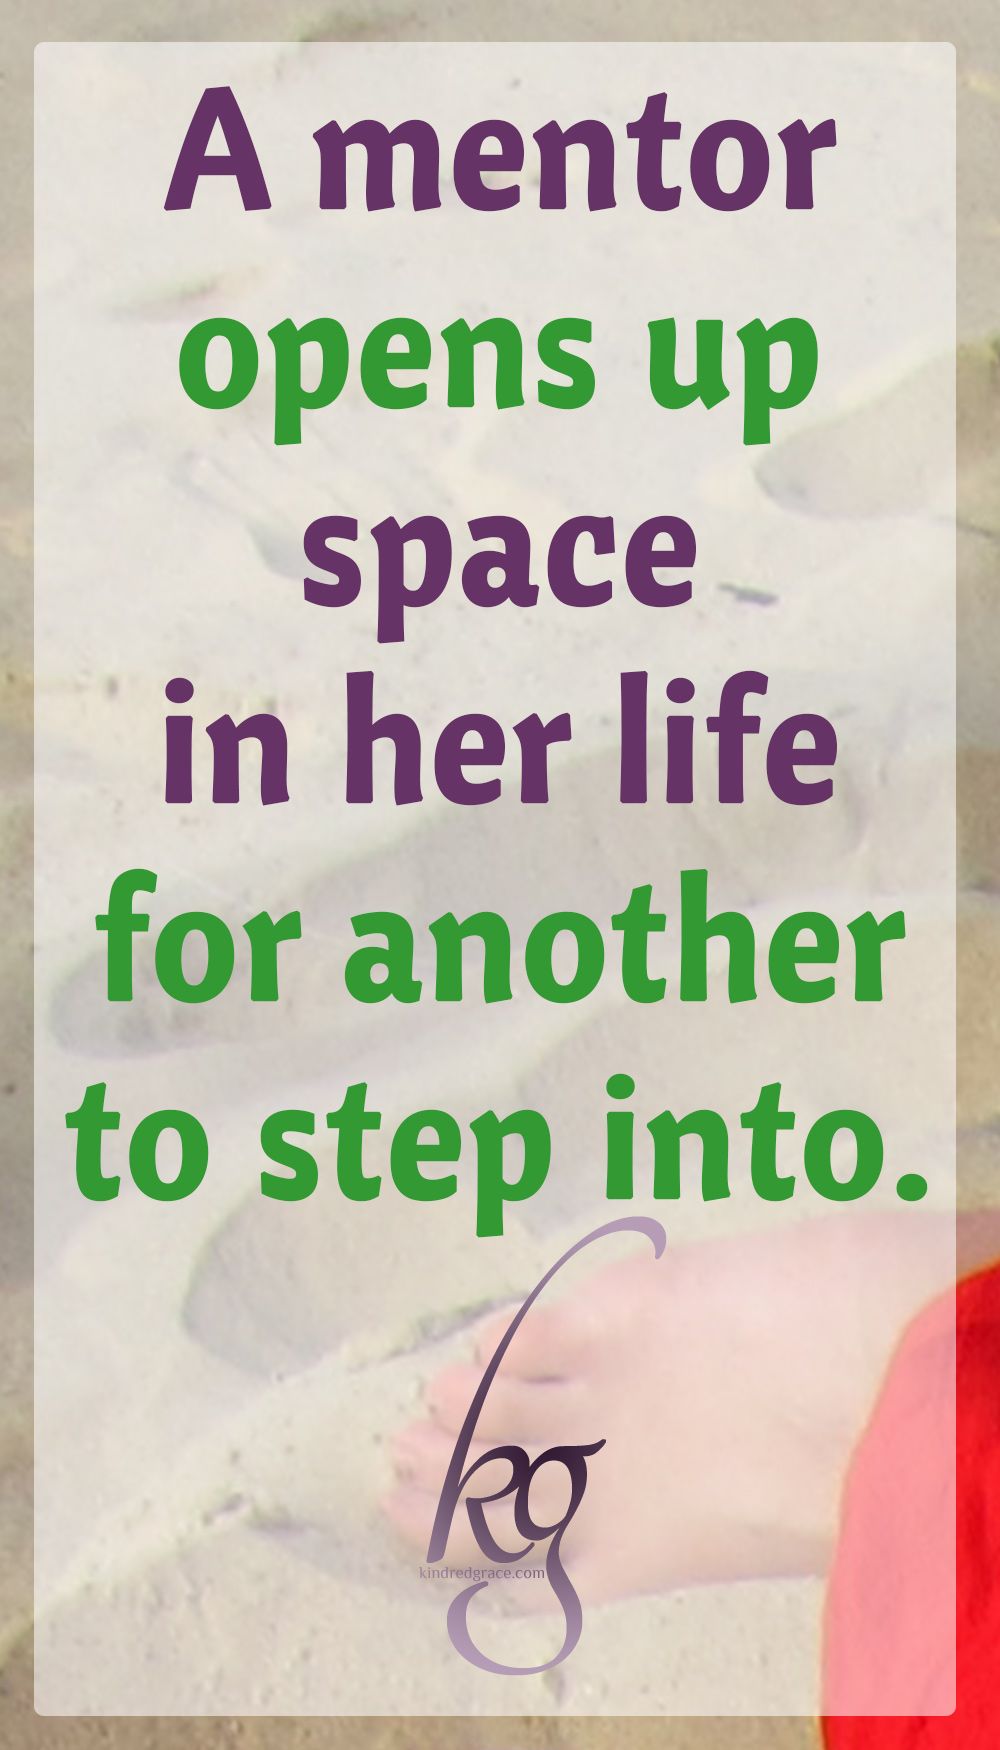 A mentor opens up space in her life for another to step into. A mentor is there.